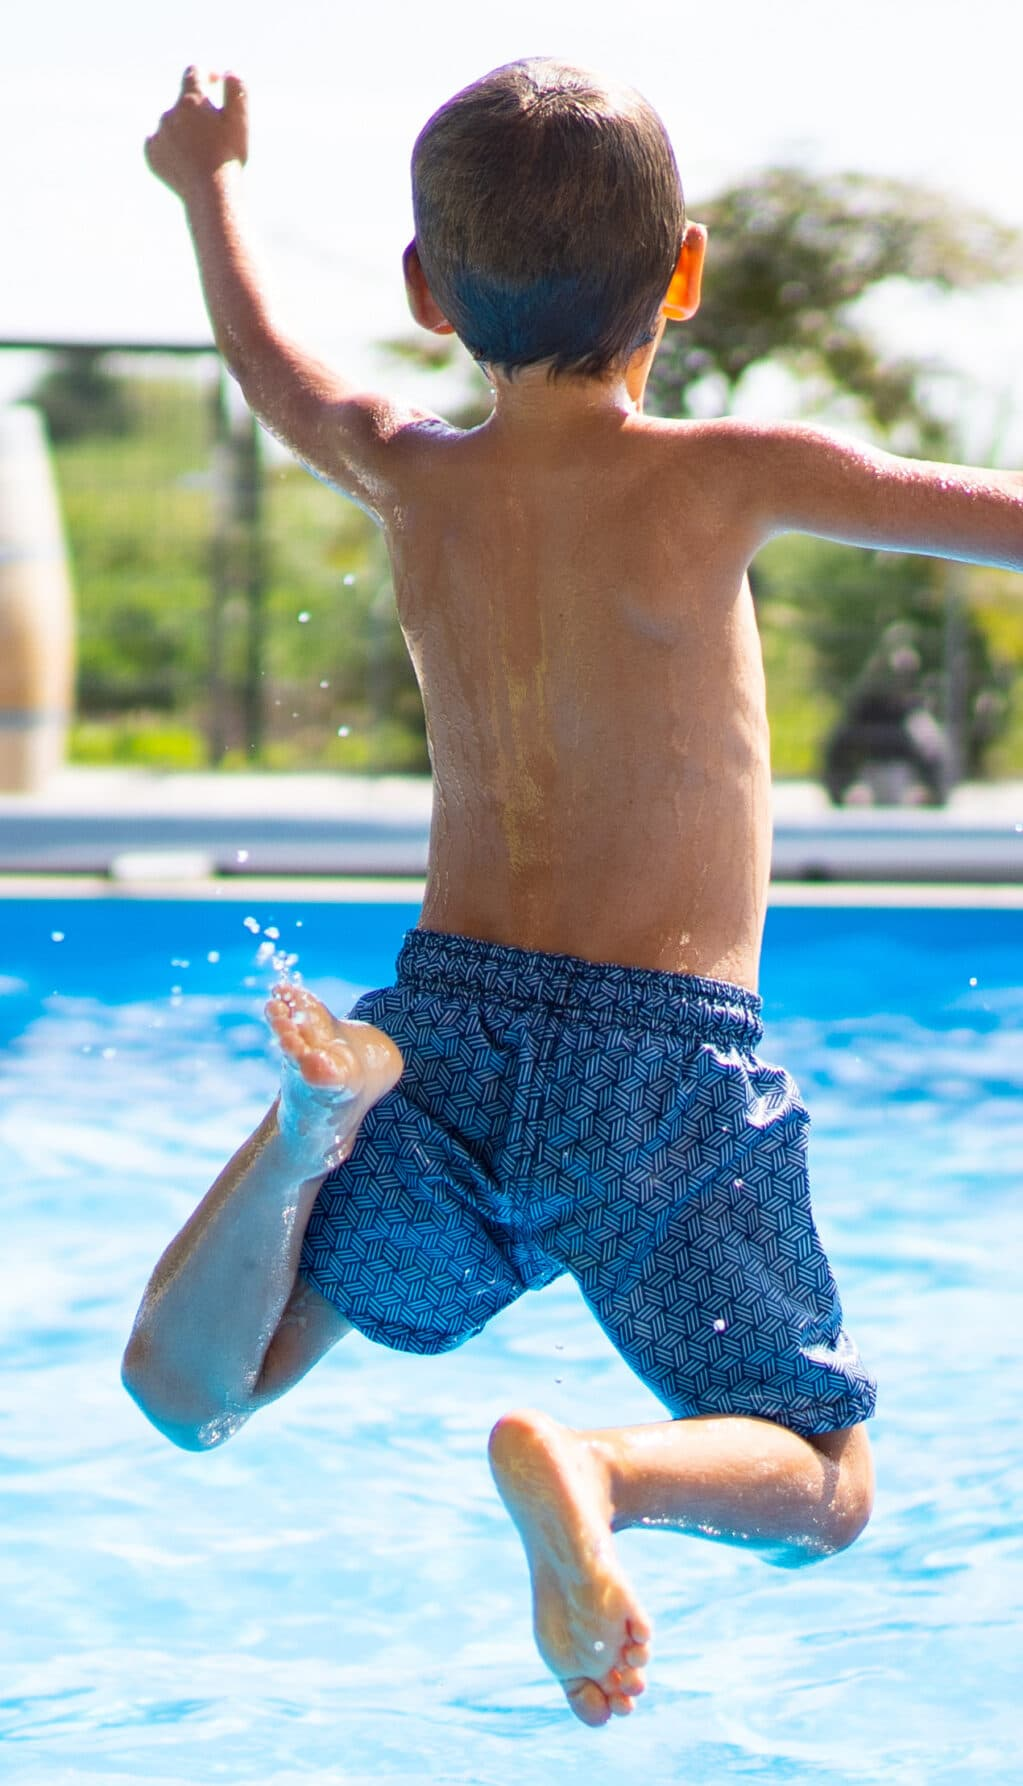 hello summer holidays – boy jumping in swimming pool